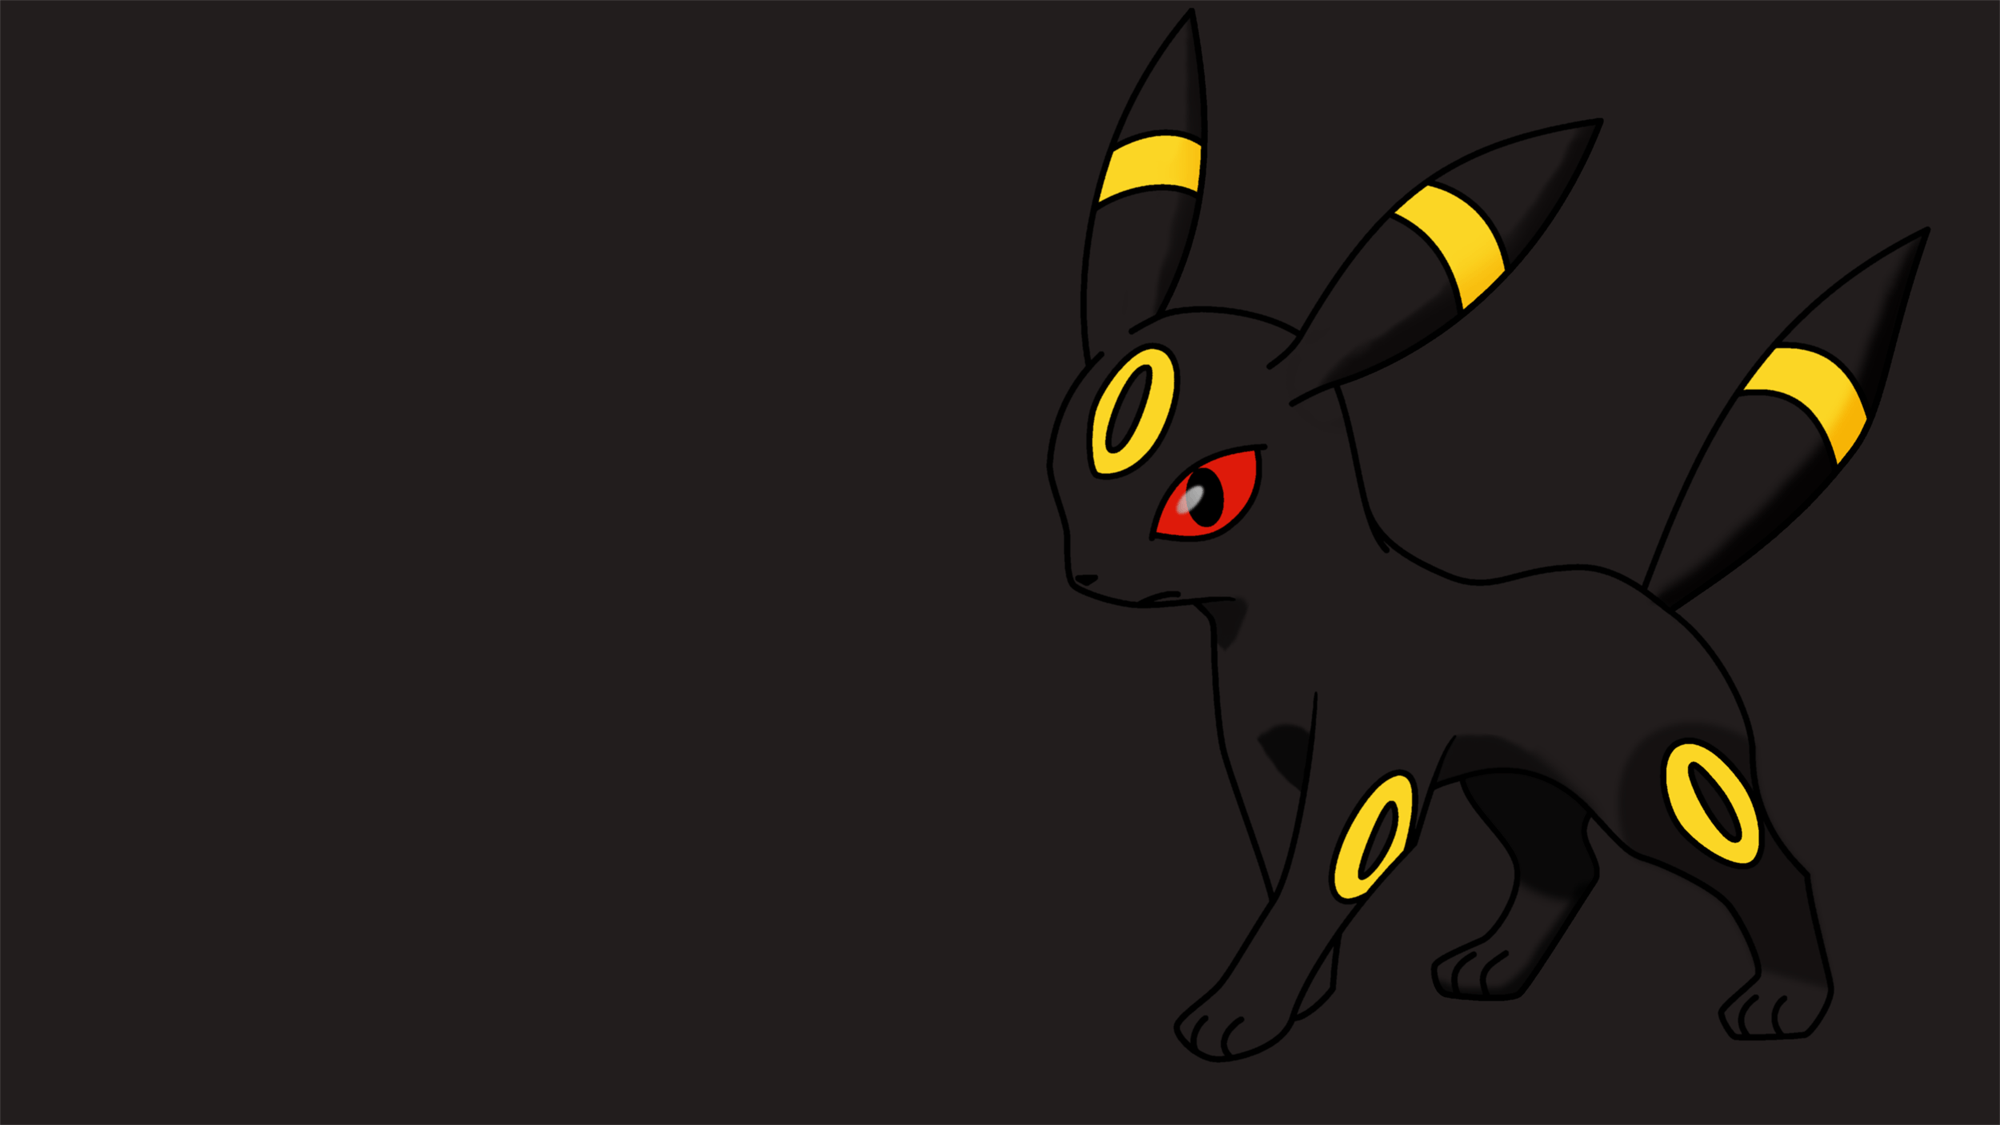 2000x1125 43 Umbreon (Pokémon) HD Wallpapers   Background Images - Wallpaper Abyss